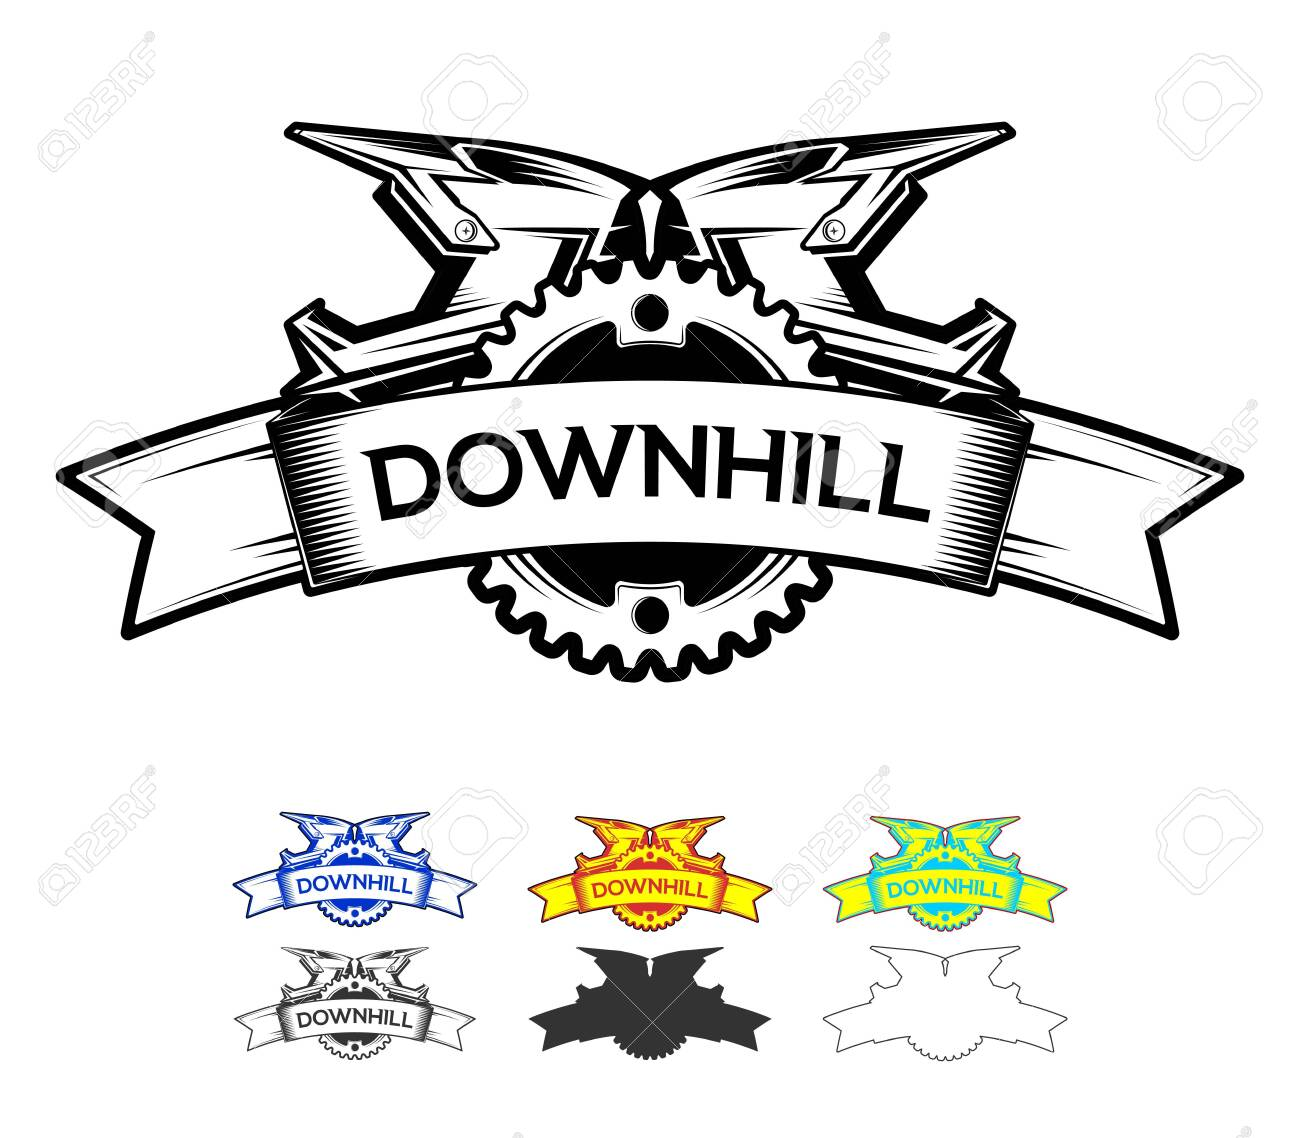 Downhill Motocros Label Design. Logo design with ribbon chain ring and full face helmets. Downhill, Freeride, Enduro, MTB. Vector Ilustration. - 143960268